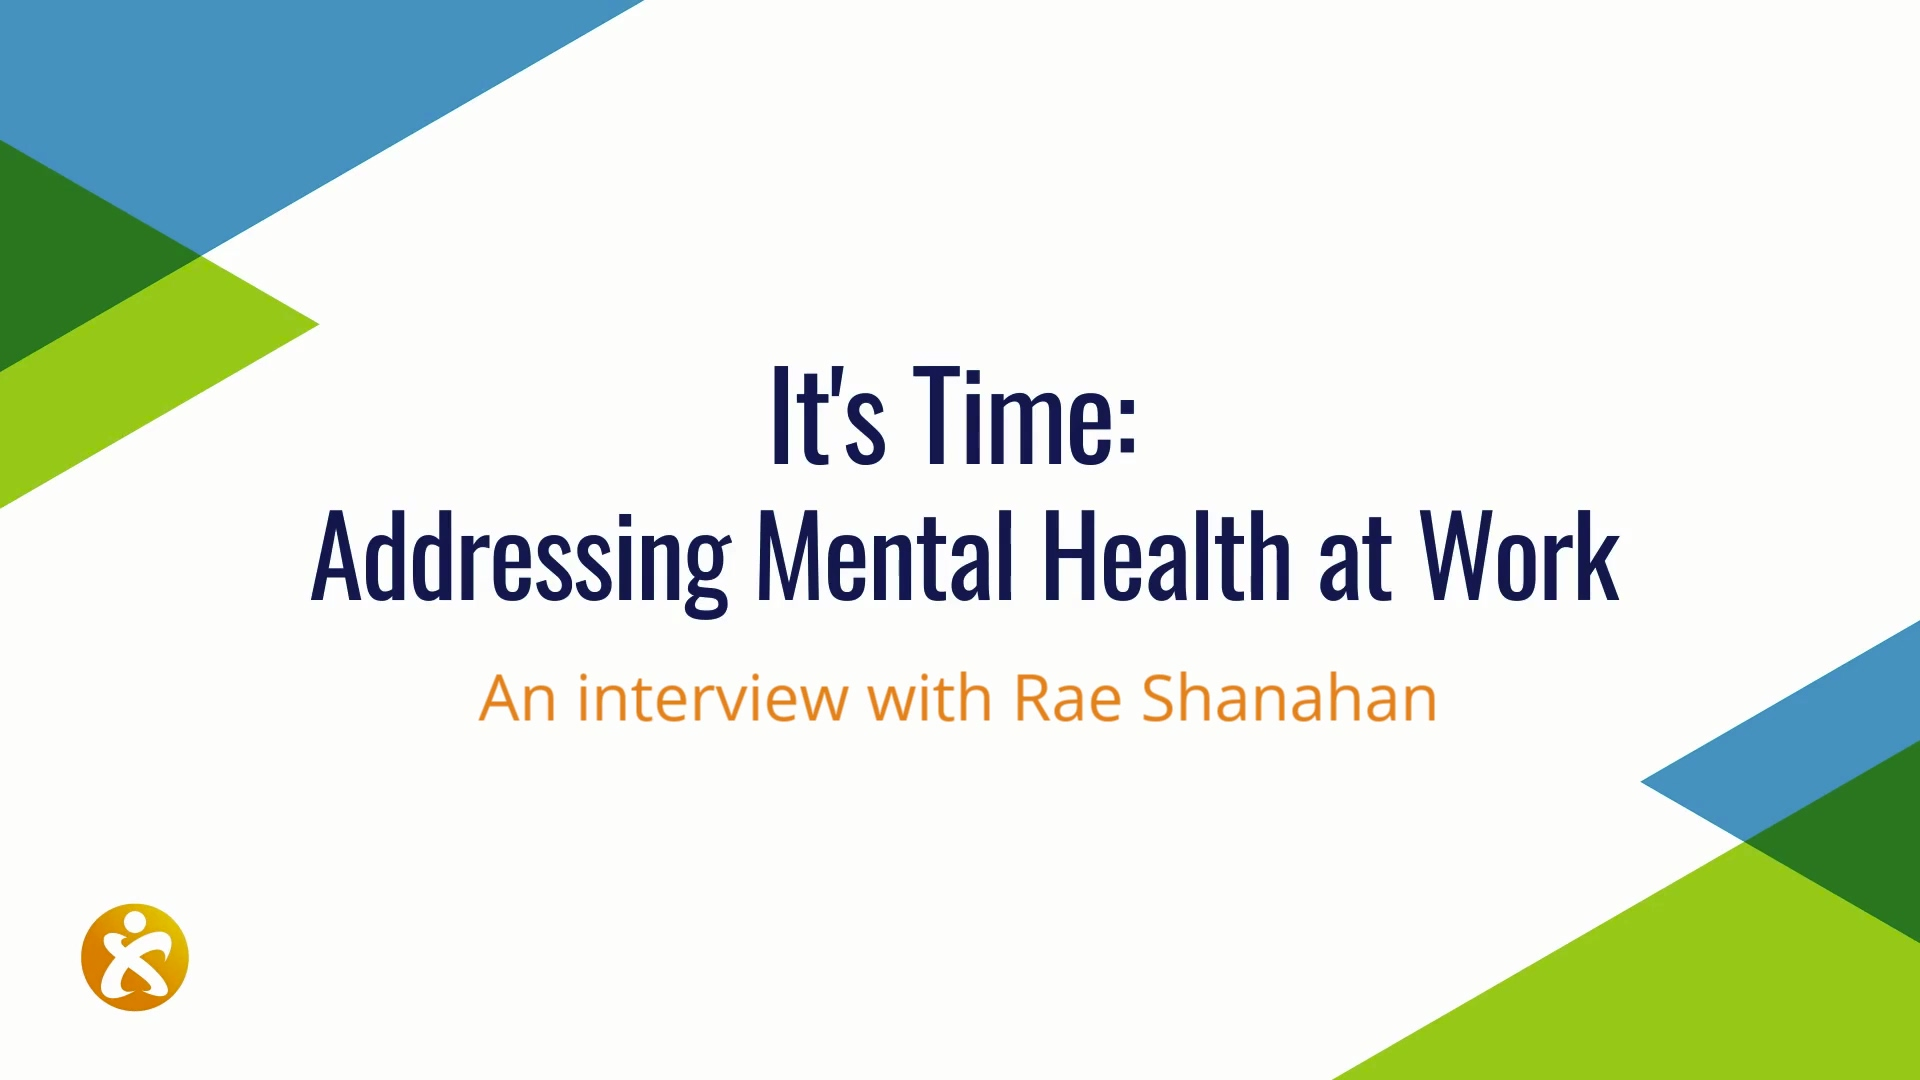 Its Time - Addressing Mental Health at Work with Rae Shanahan